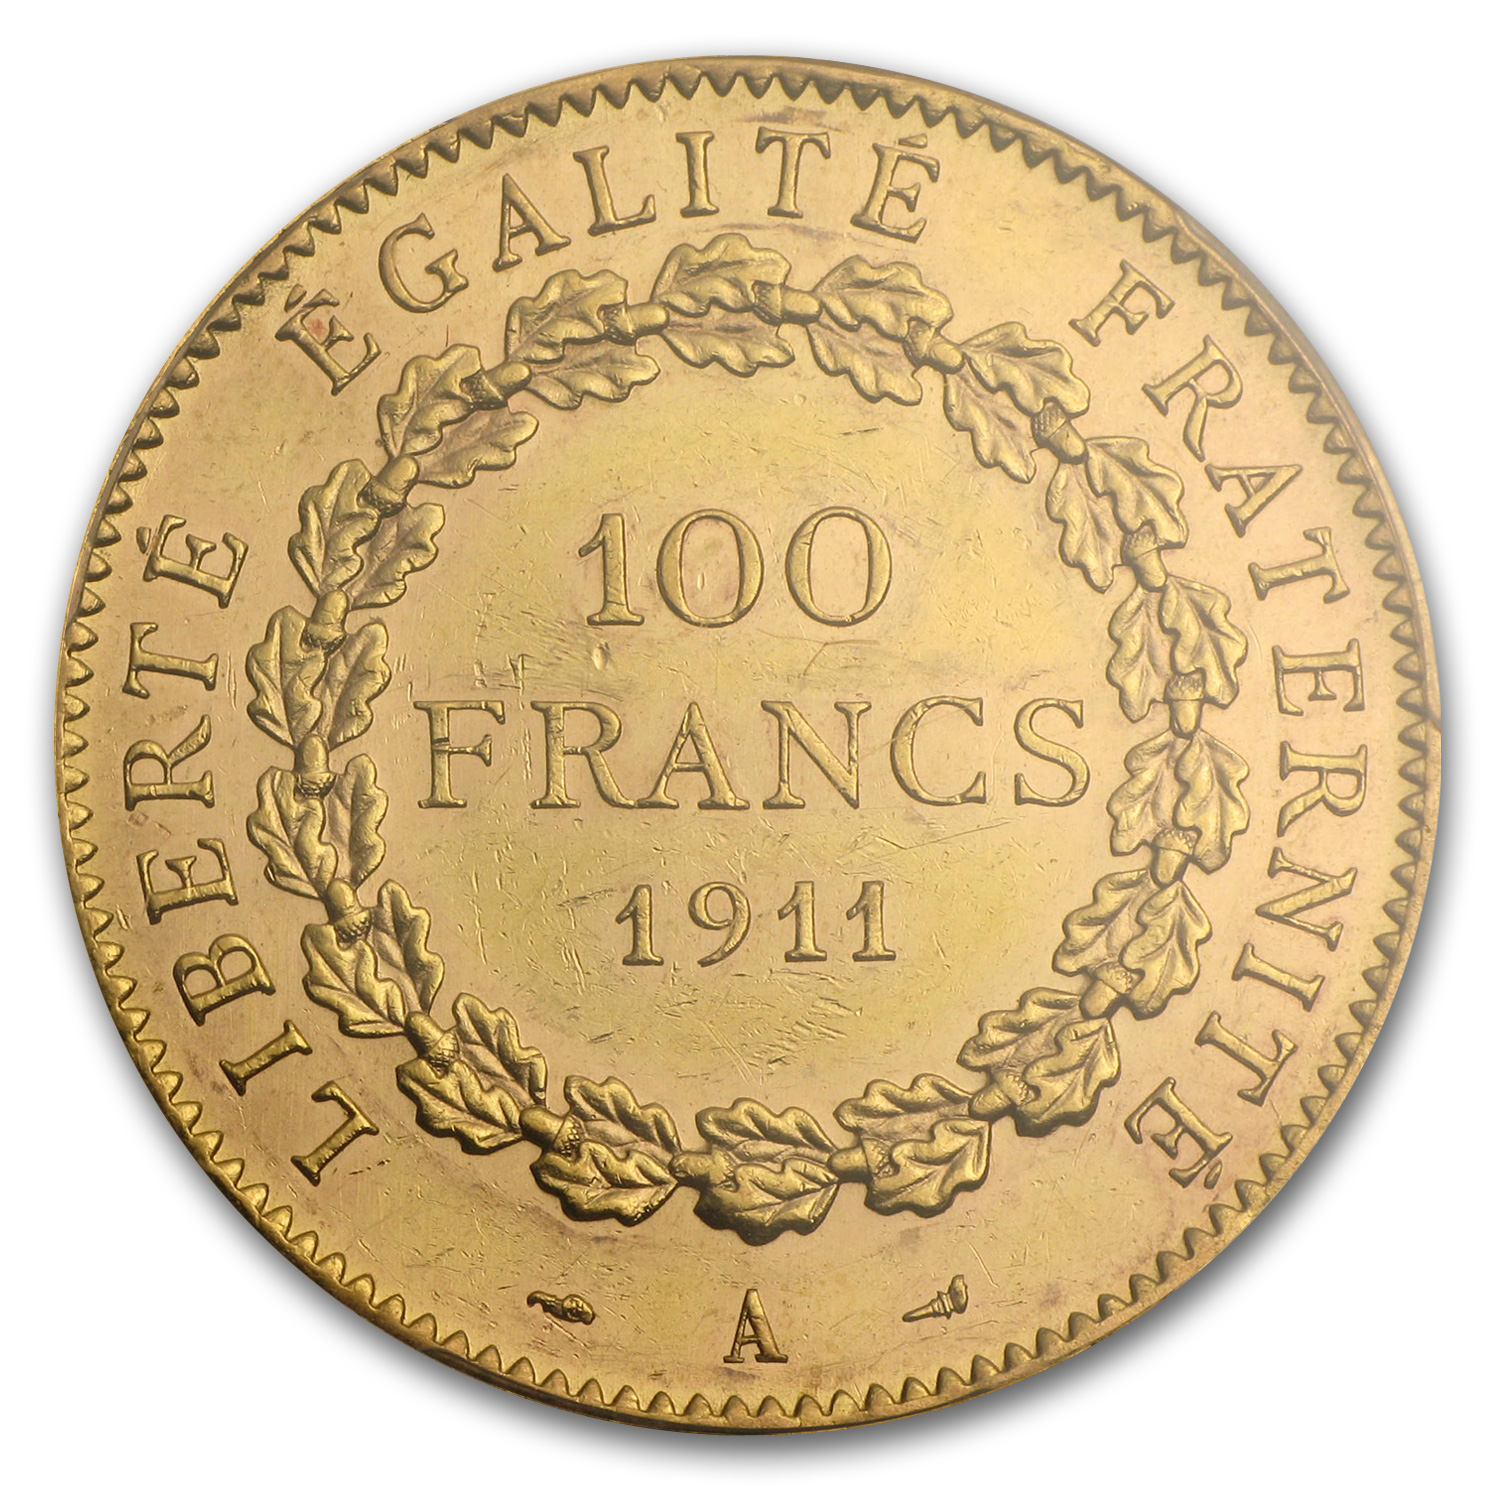 France Gold 100 Francs (Lucky Angel) (AU-58 PCGS)